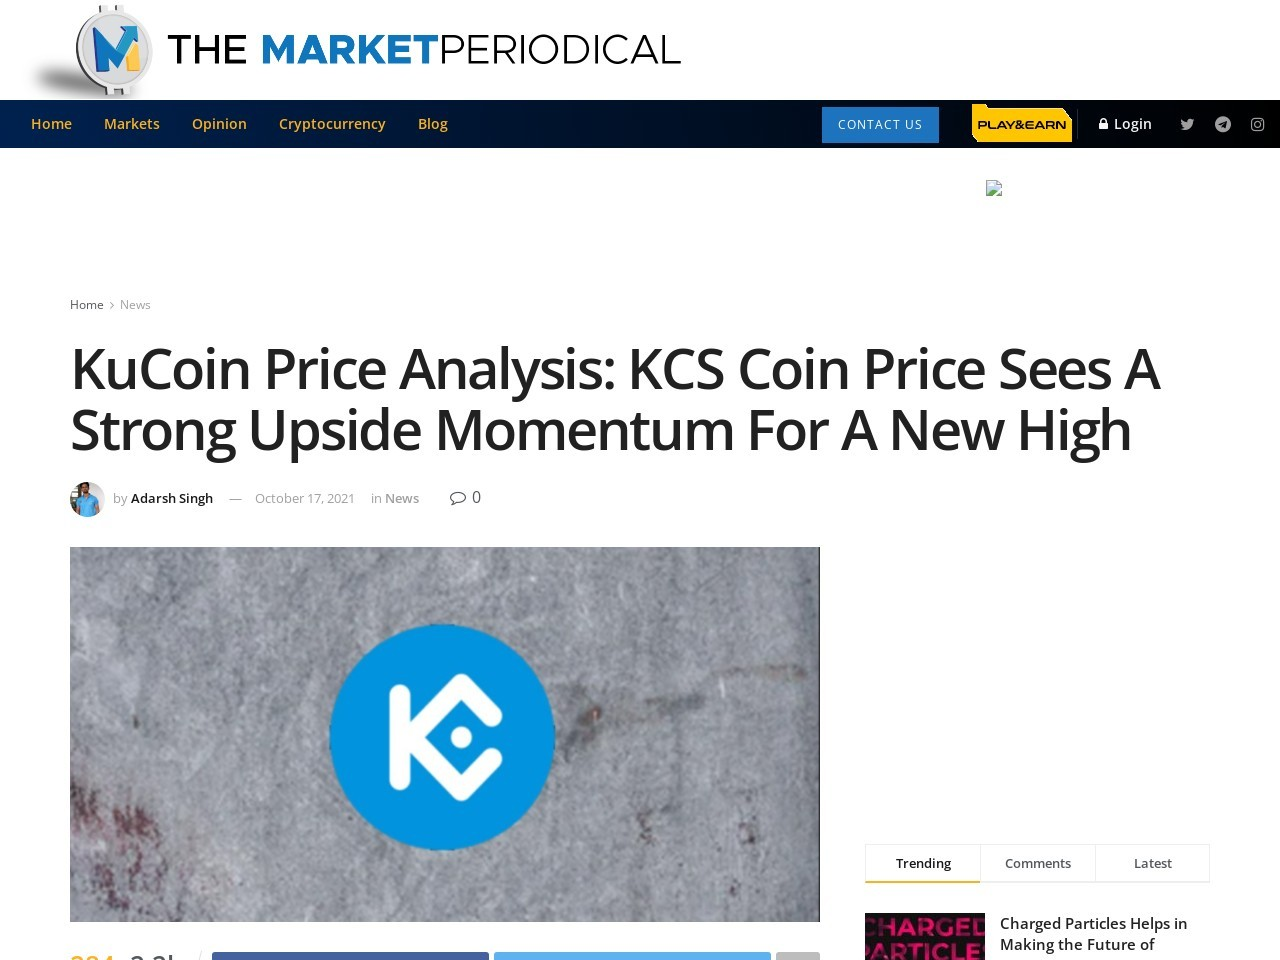 KuCoin Price Analysis: KCS Coin Price Sees A Strong Upside Momentum For A New High – Cryptocurrency News – The Market Periodical